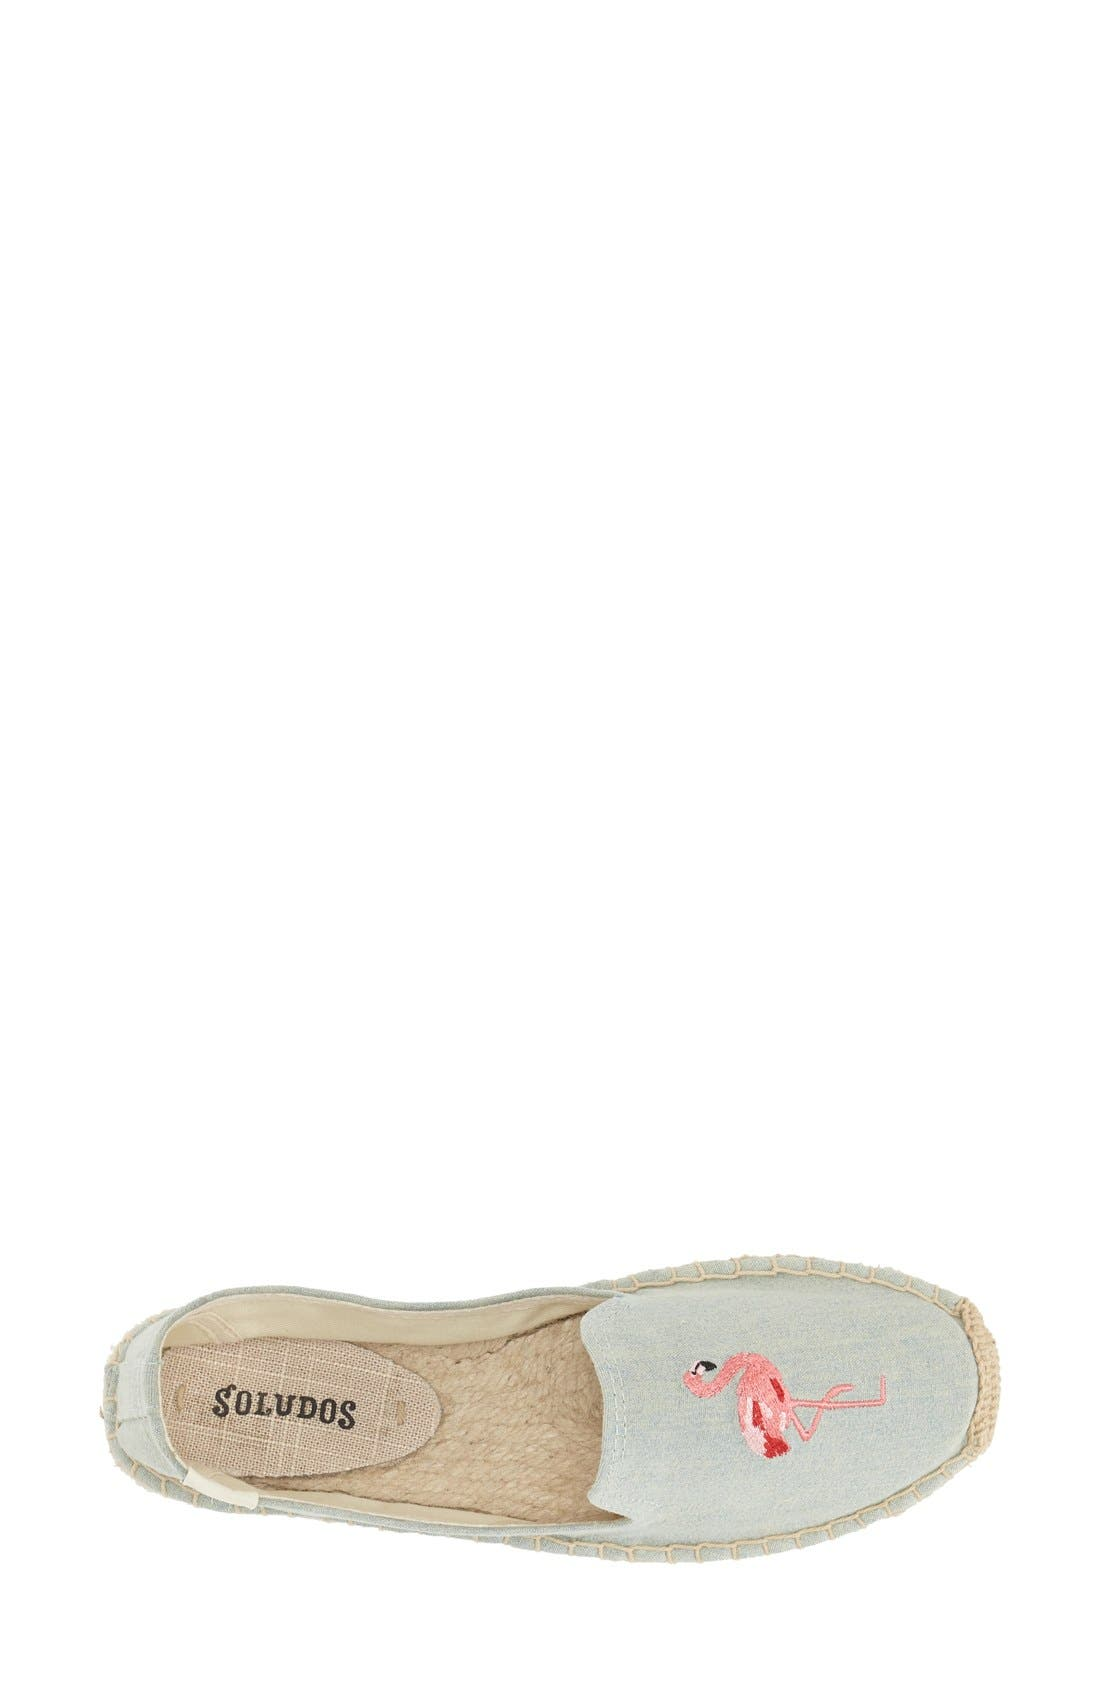 SOLUDOS, Espadrille Slip-On, Alternate thumbnail 6, color, FLAMINGO CHAMBRAY